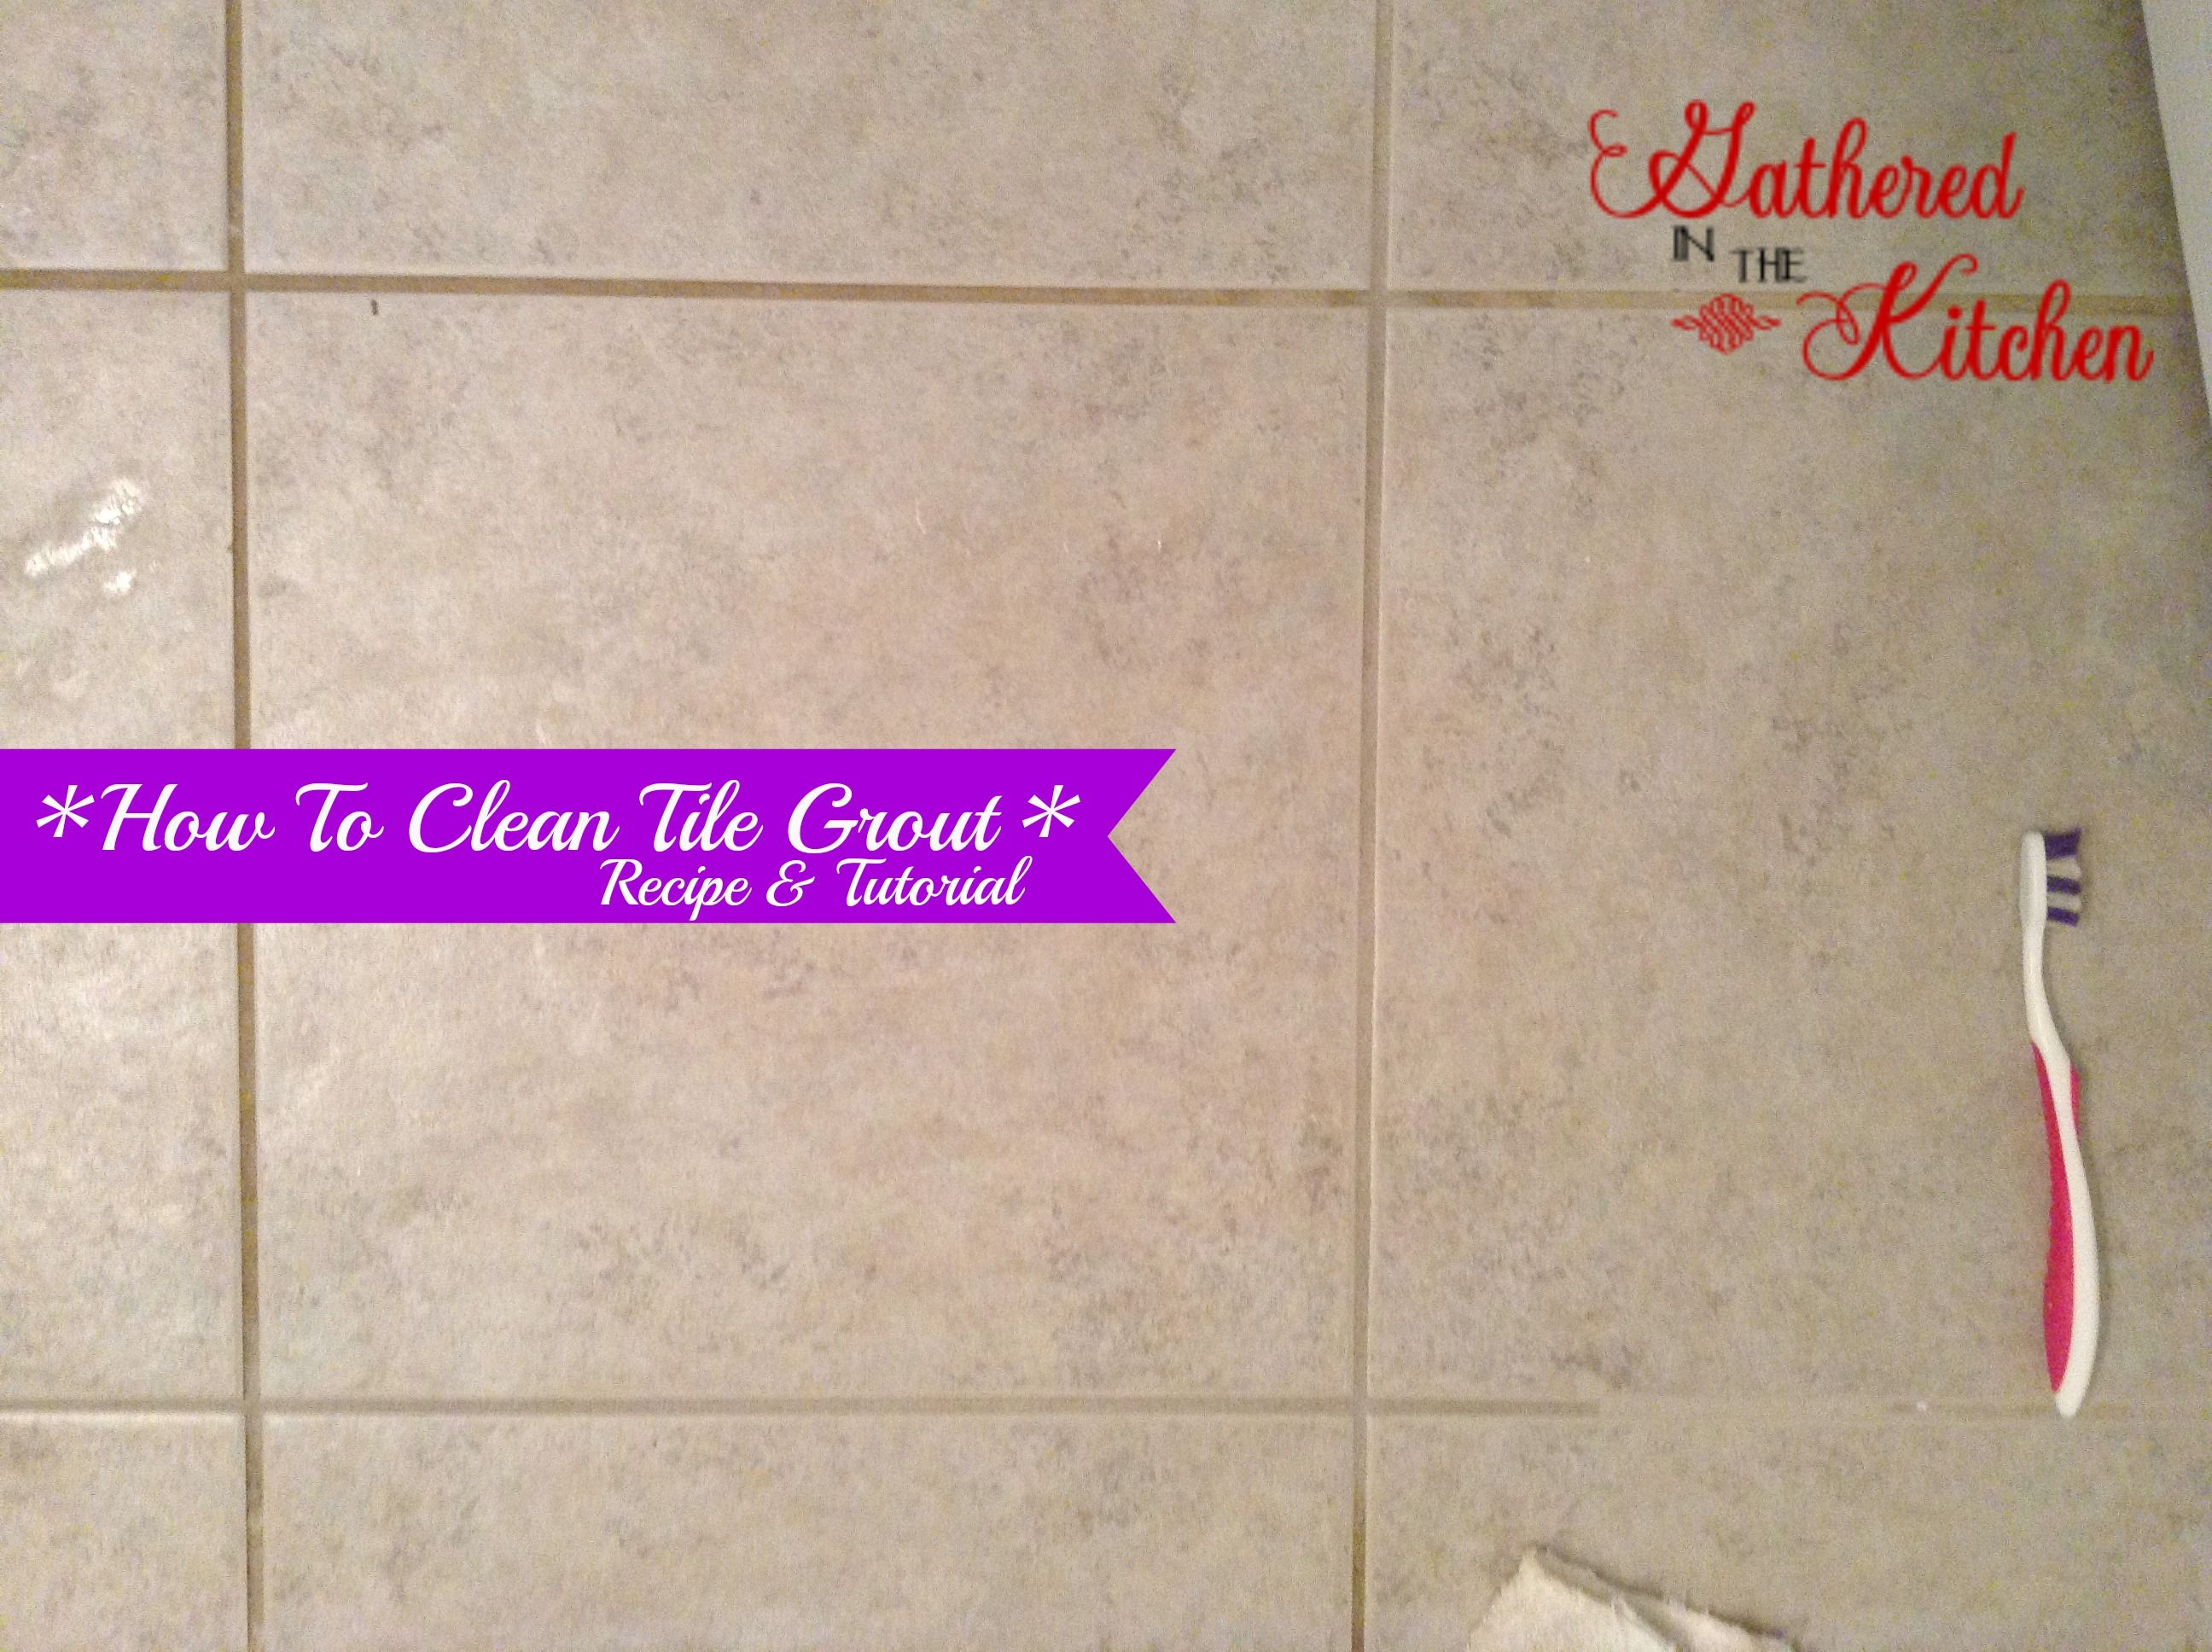 How To Clean Tile Grout Homemade Cleaner Recipe Recipe Clean Tile Grout Diy Grout Cleaner Diy Grout